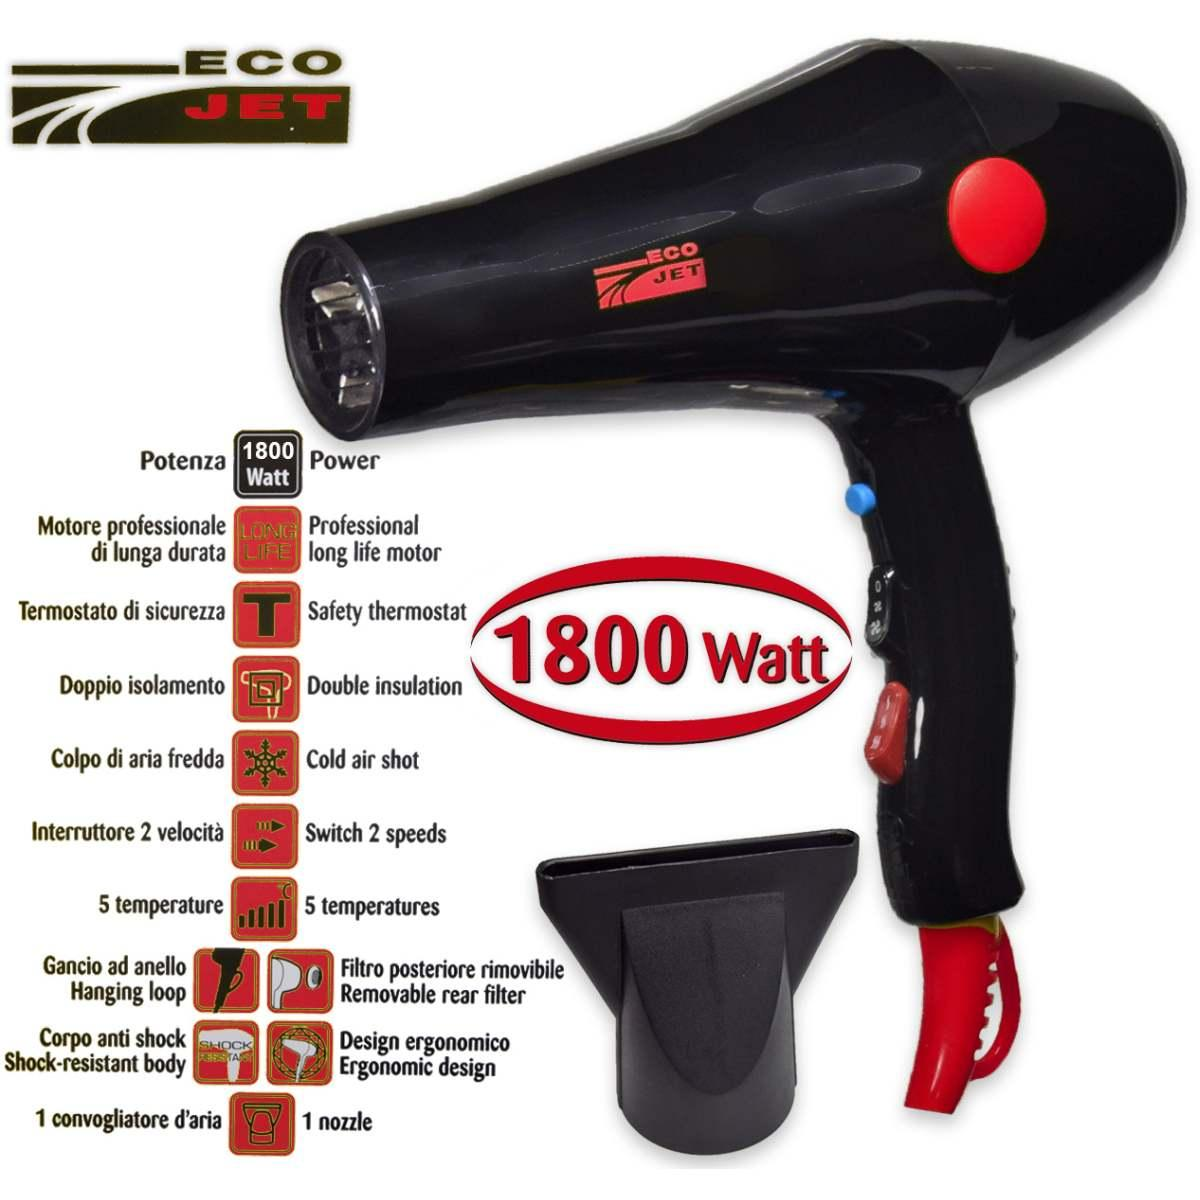 Phon new eco jet 1800 watt nero